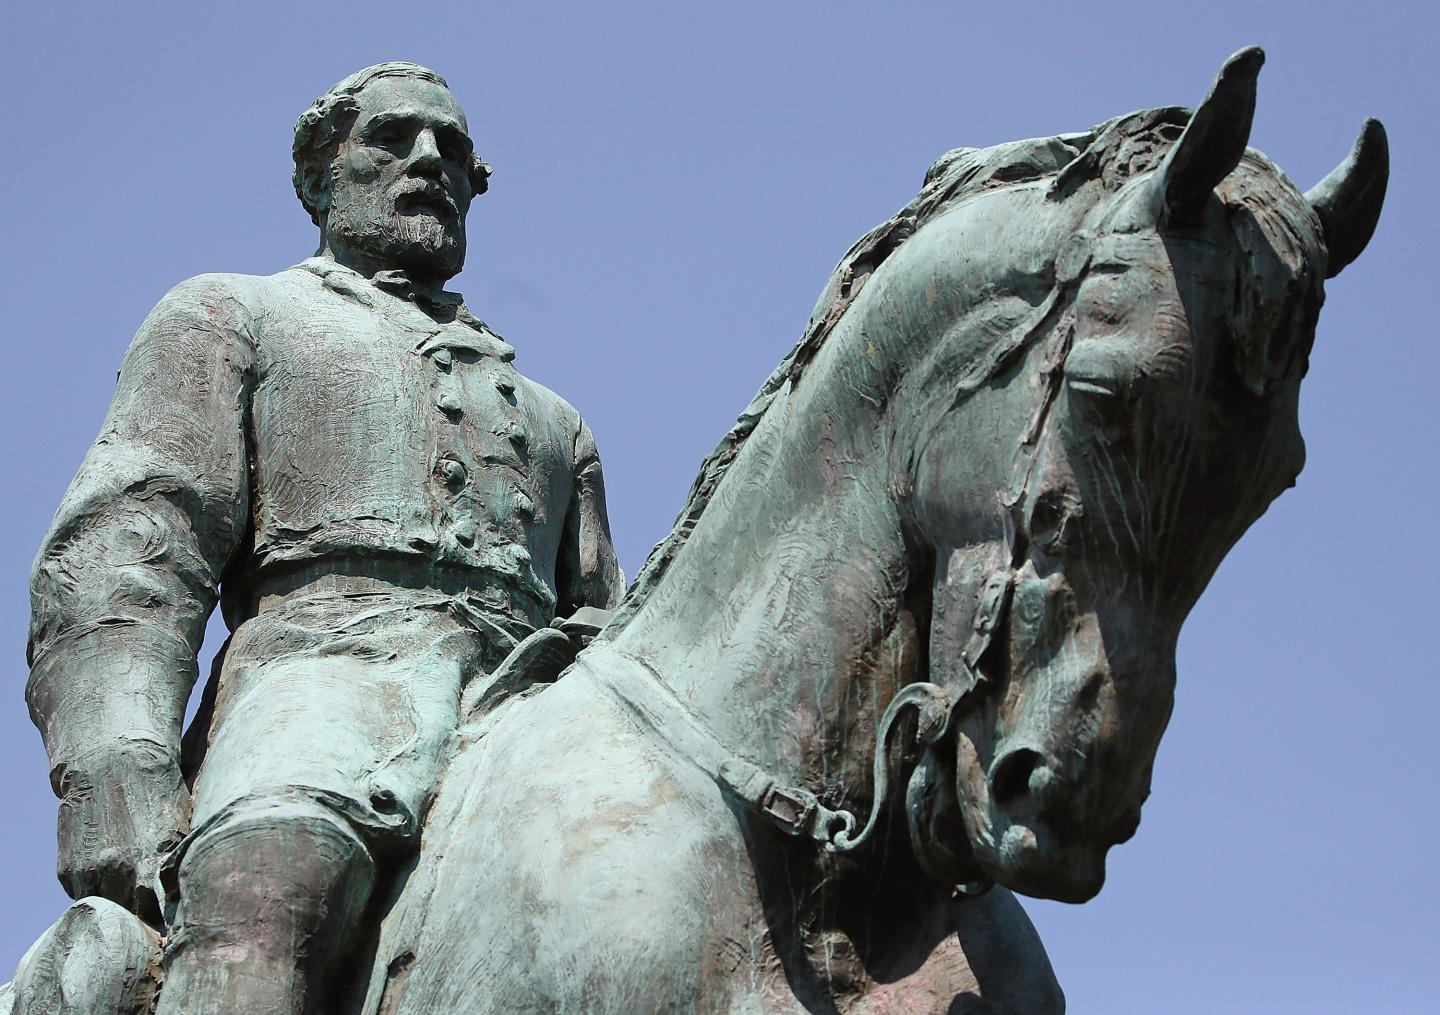 The statue of Confederate Gen. Robert E. Lee in the center of the renamed Emancipation Park on August 22, 2017 in Charlottesville, Virginia. A decision to remove the statue caused a violent protest by white nationalists, neo-Nazis, the Ku Klux Klan and members of the 'alt-right'.MARK WILSON/GETTY